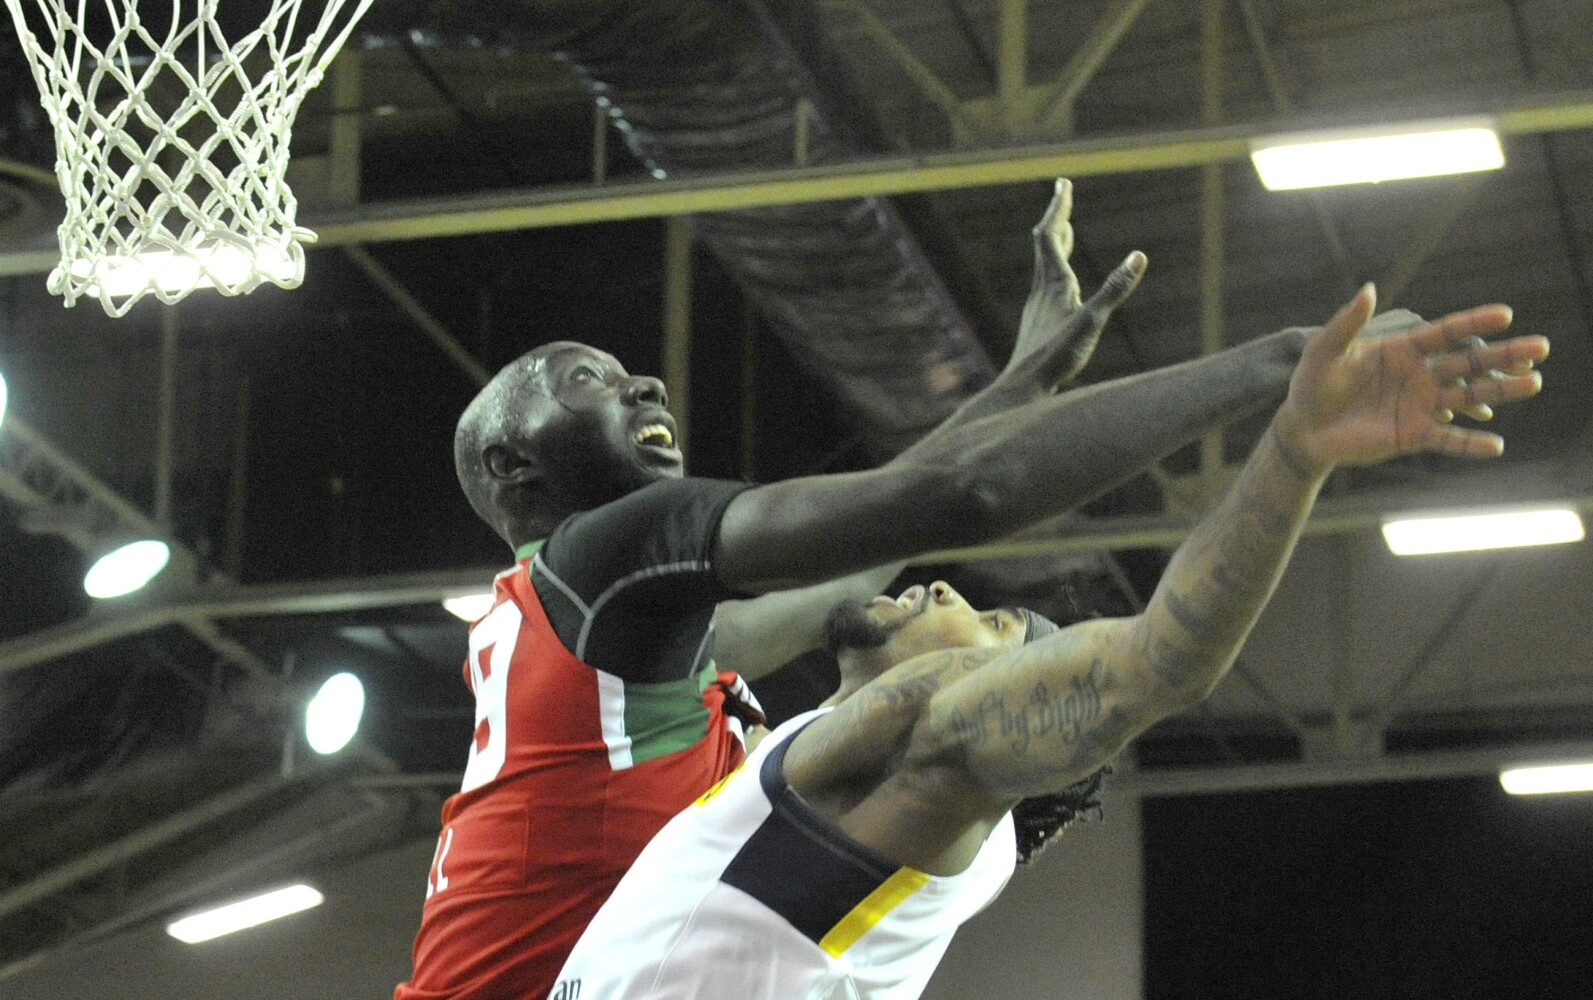 Tacko Fall leads Red Claws to victory in Portland debut - CentralMaine.com